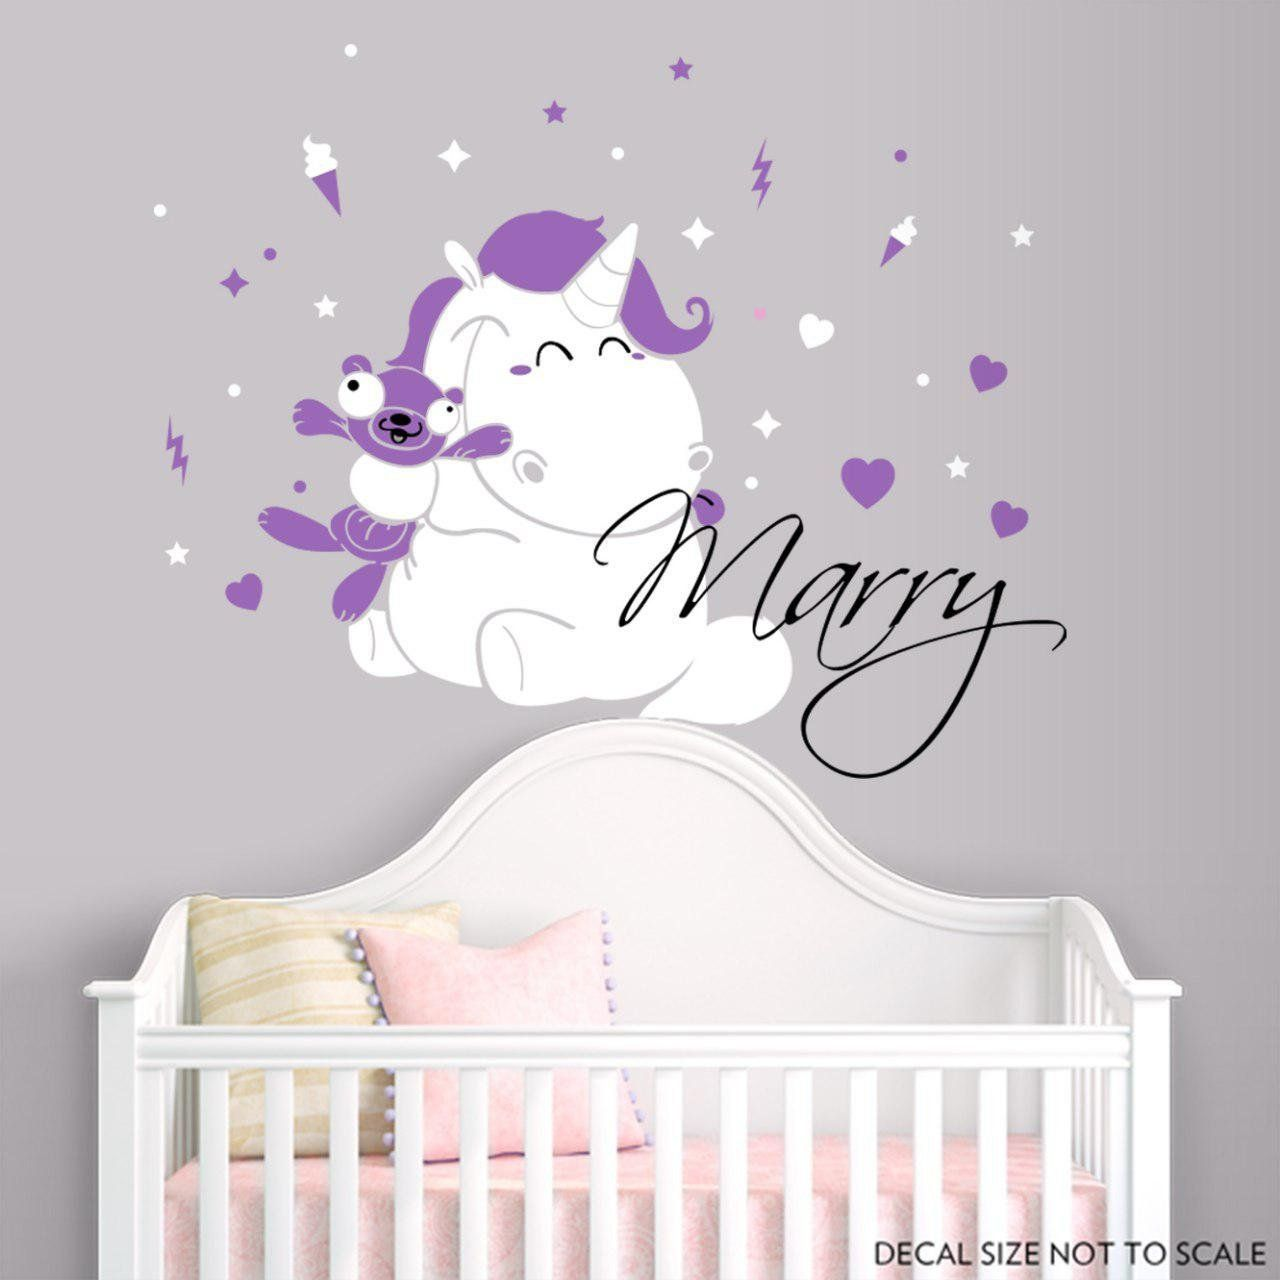 Personalized Name Wall Decal Unicorn